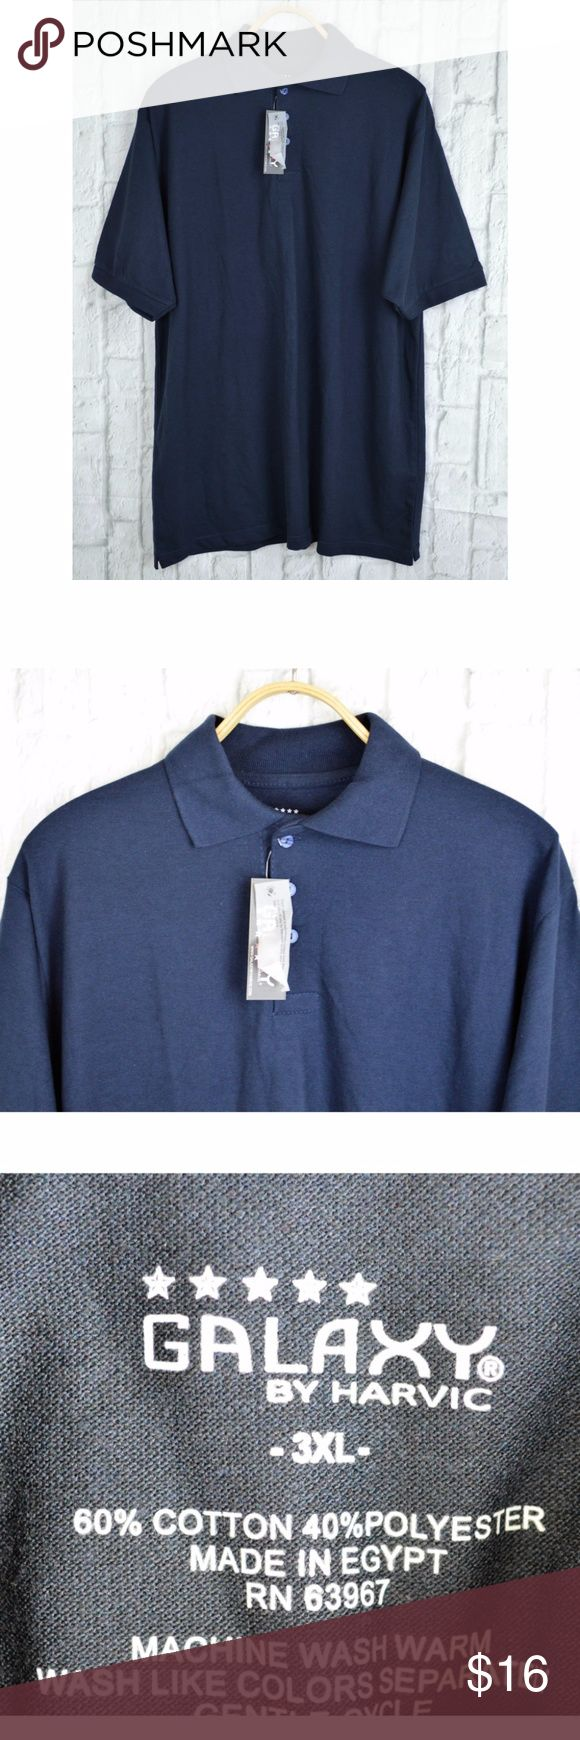 """Pique Sport Polo Golf Shirt Men's Collar 3-Button New with tags Galaxy by Harvic Men's Cotton Blend Collar 3-Button Pique Sport Polo Golf Short T-Shirt Top  Sleeve Shirt Navy 3XL  Measurements: Armpit to armpit 25"""" Shoulder 20"""" Hem 25"""" Length 33"""" Side Vent 1""""  Material: 60% cotton, 40% polyester  Ribbed polo collar with three-button placket Semi-fitted design Ribbed armbands Ribbed polo collar Short sleeves  MWC05-24 Galaxy by Harvic Shirts Polos"""